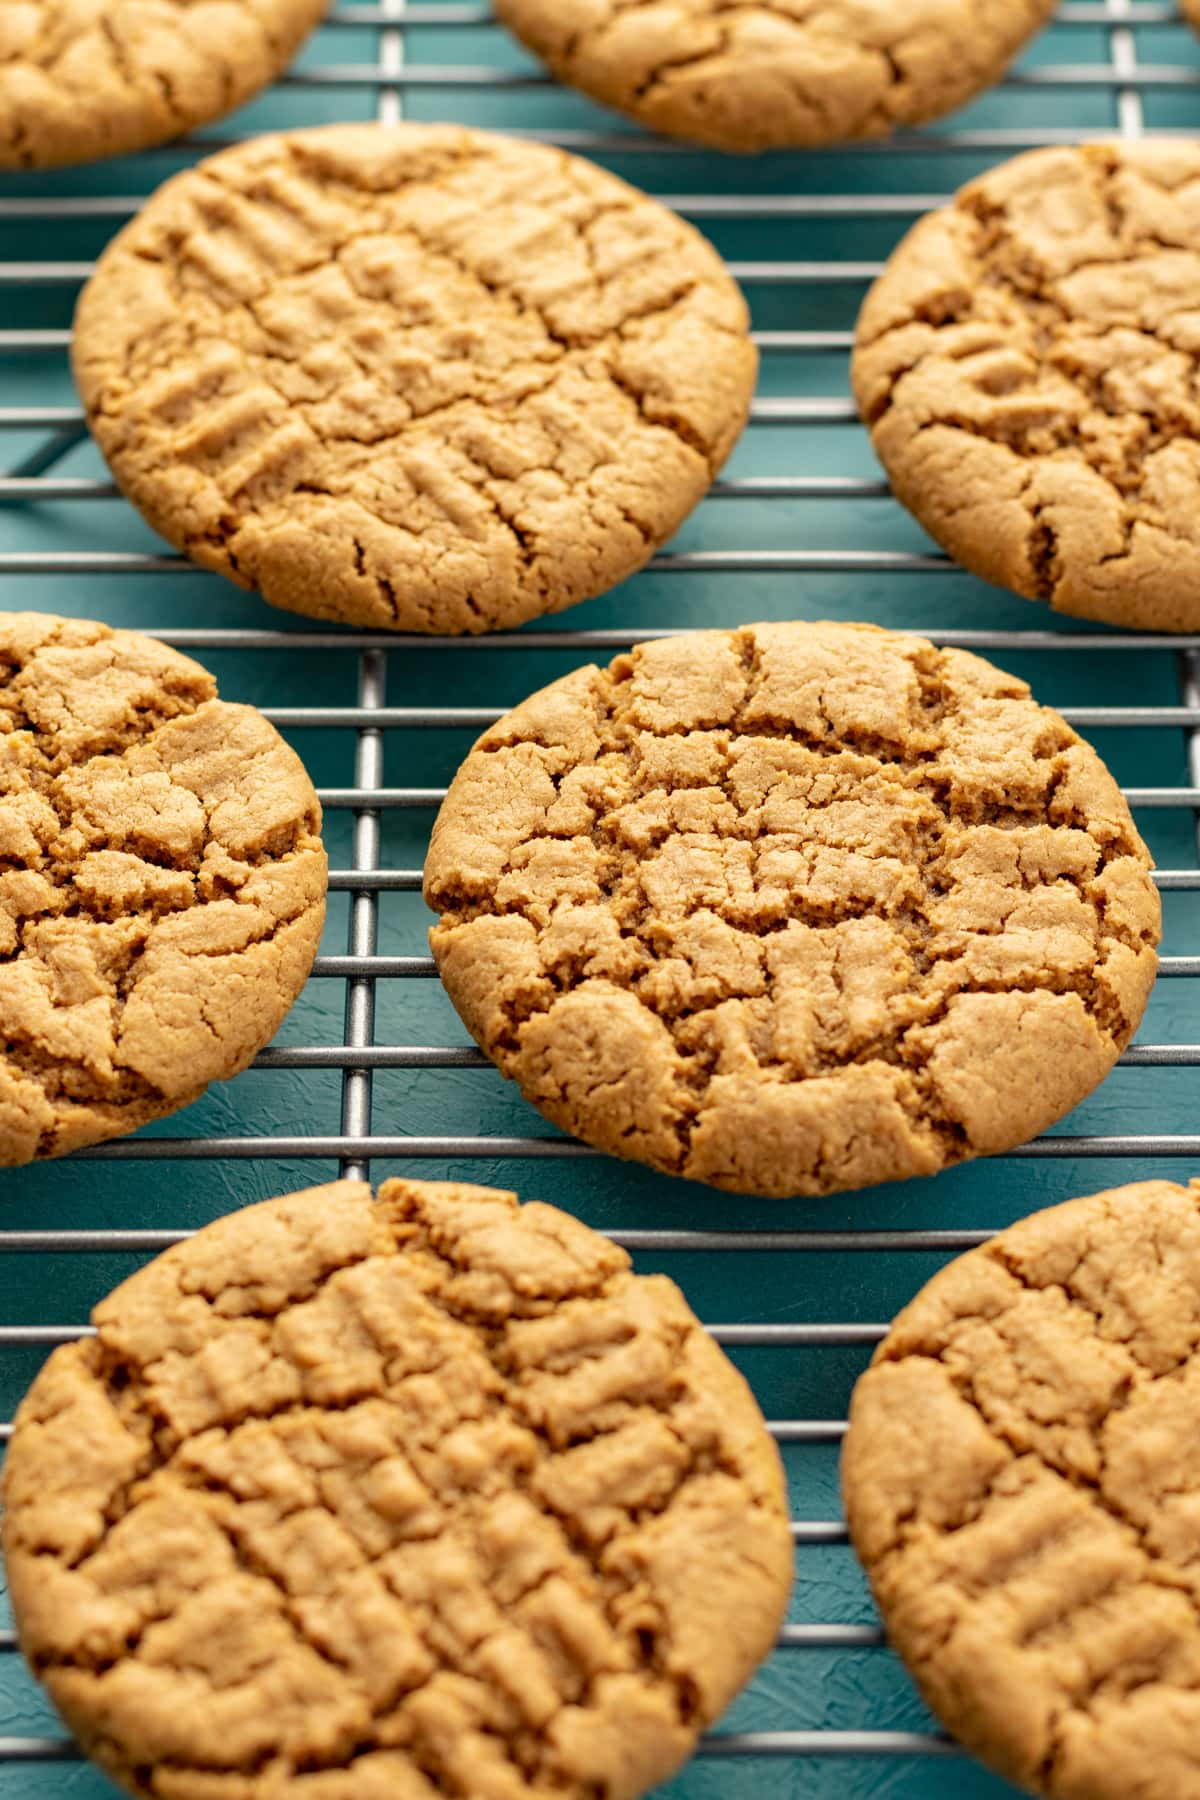 crinkly cookies on a cooling rack